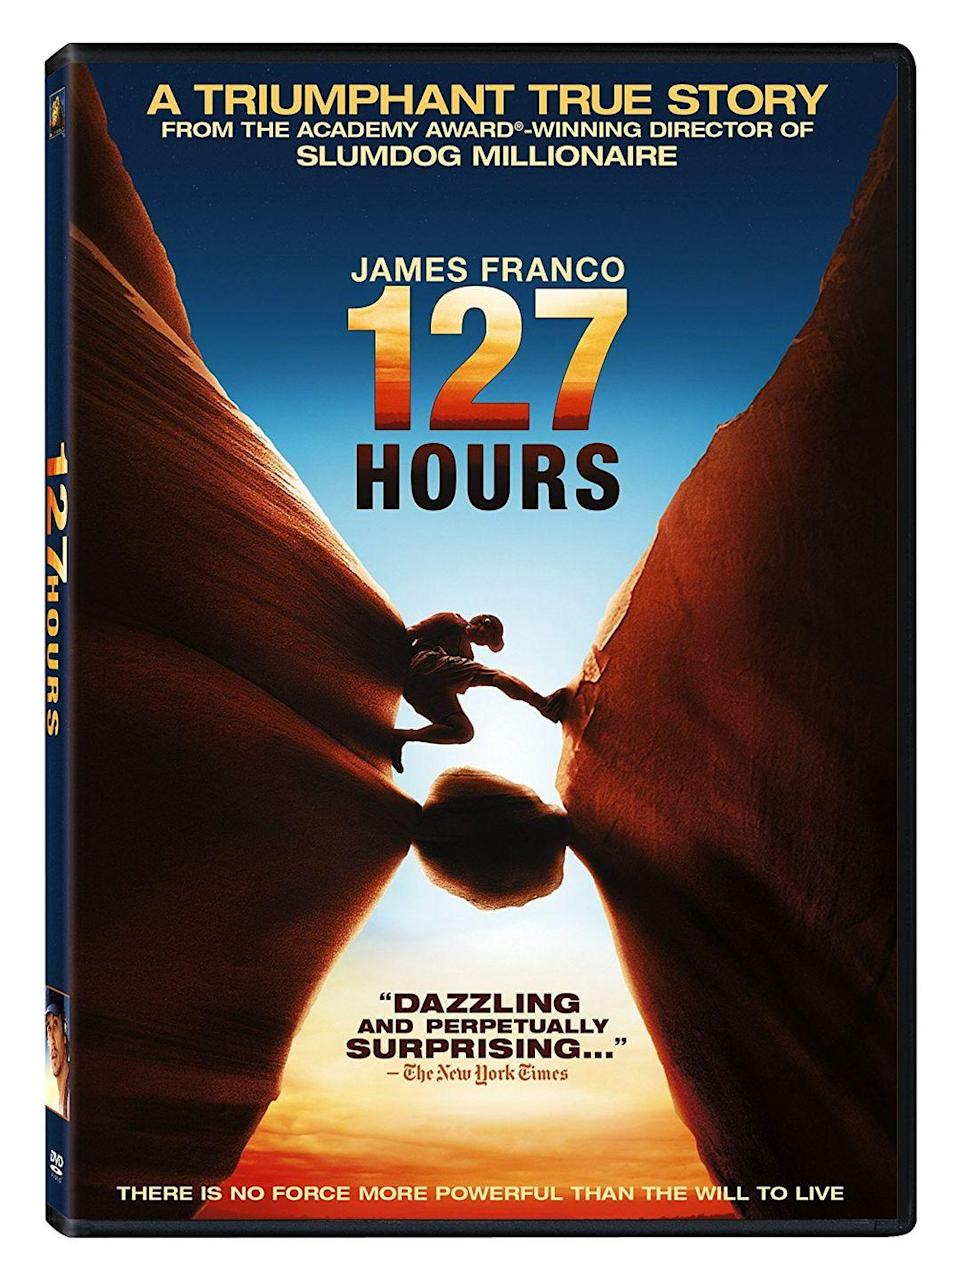 """<p><a class=""""link rapid-noclick-resp"""" href=""""https://www.amazon.com/127-Hours-James-Franco/dp/B004Q3SGNK/ref=sr_1_1?dchild=1&keywords=127+hours&qid=1614190338&sr=8-1&tag=syn-yahoo-20&ascsubtag=%5Bartid%7C10063.g.35716832%5Bsrc%7Cyahoo-us"""" rel=""""nofollow noopener"""" target=""""_blank"""" data-ylk=""""slk:Watch Now"""">Watch Now</a> </p><p>James Franco stars as hiker Aron Ralston in this heart-wrenching true story about an adventurer who finds himself trapped under a boulder for five days. Based on Ralston's memoir, the film chronicles his agonizing decision to amputate his own arm in order to survive.</p>"""